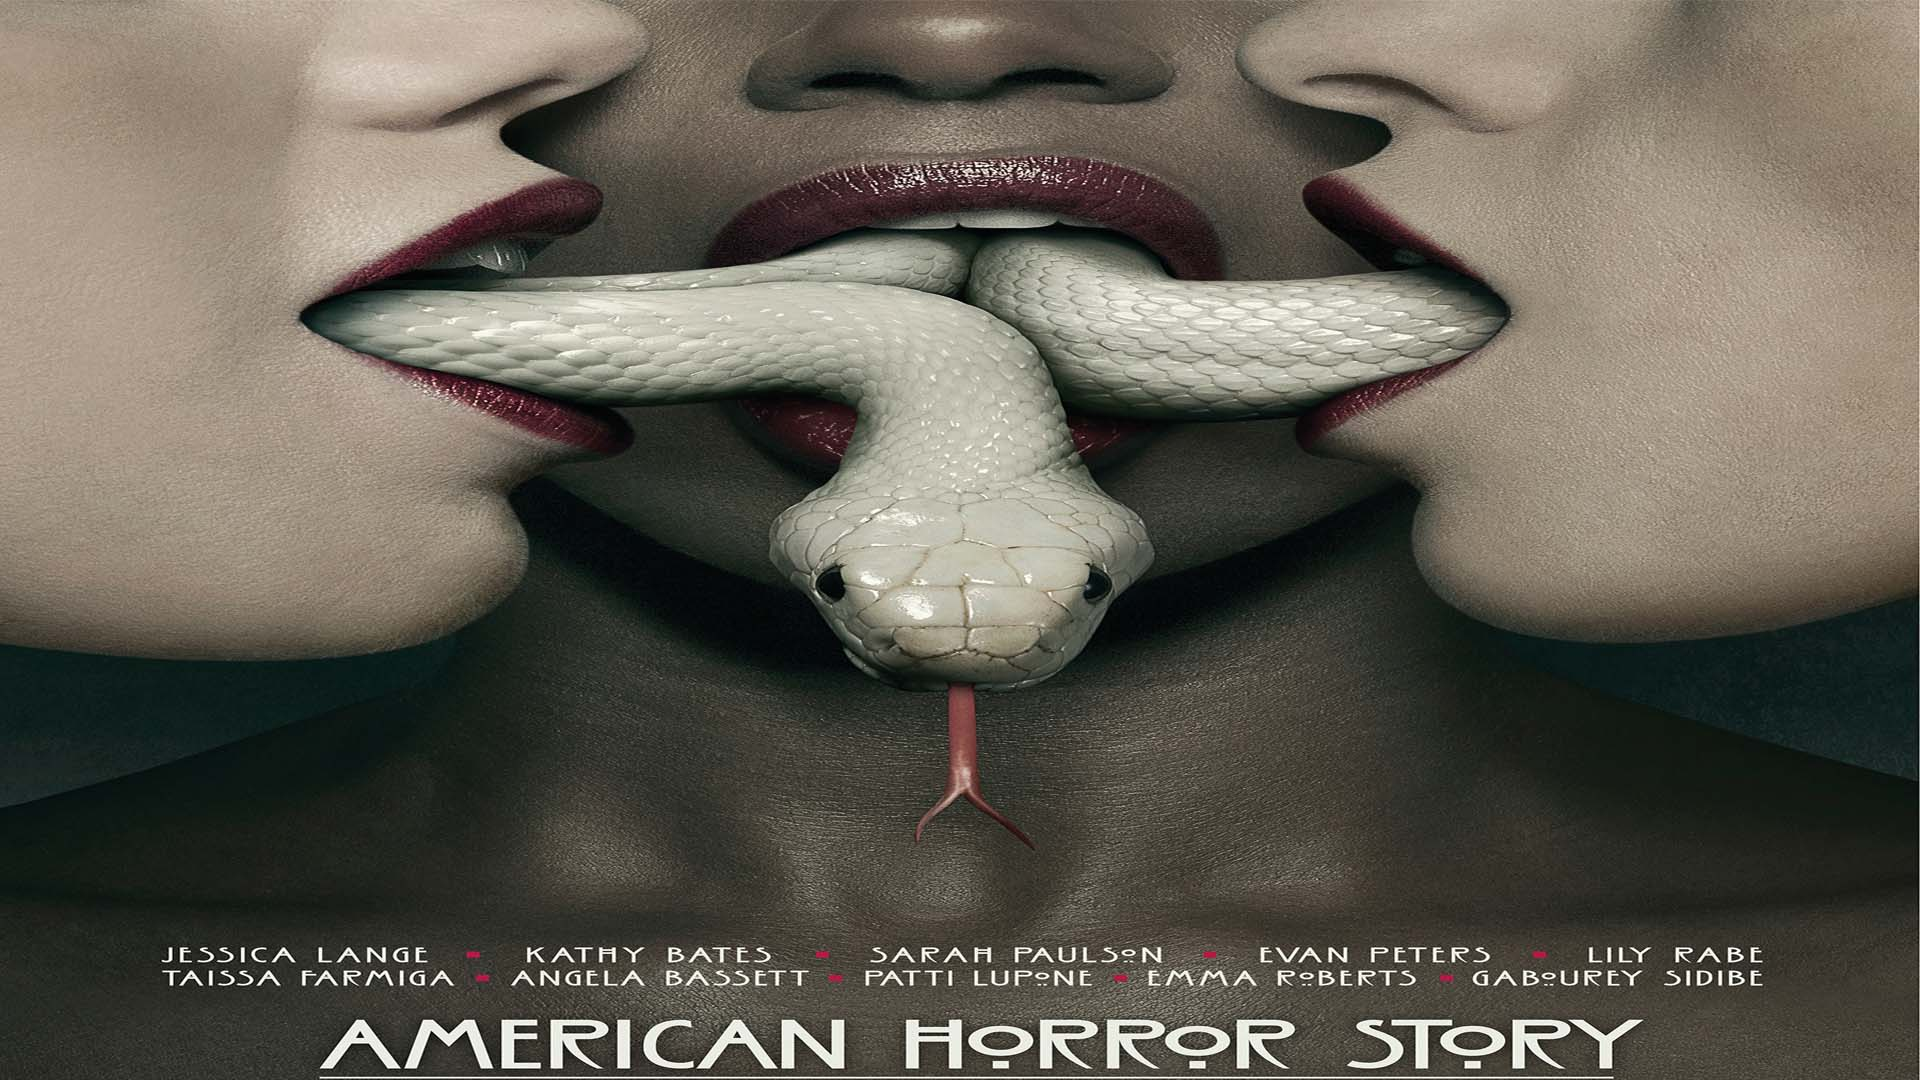 48 american horror story hd wallpaper on wallpapersafari - American horror story wallpaper ...